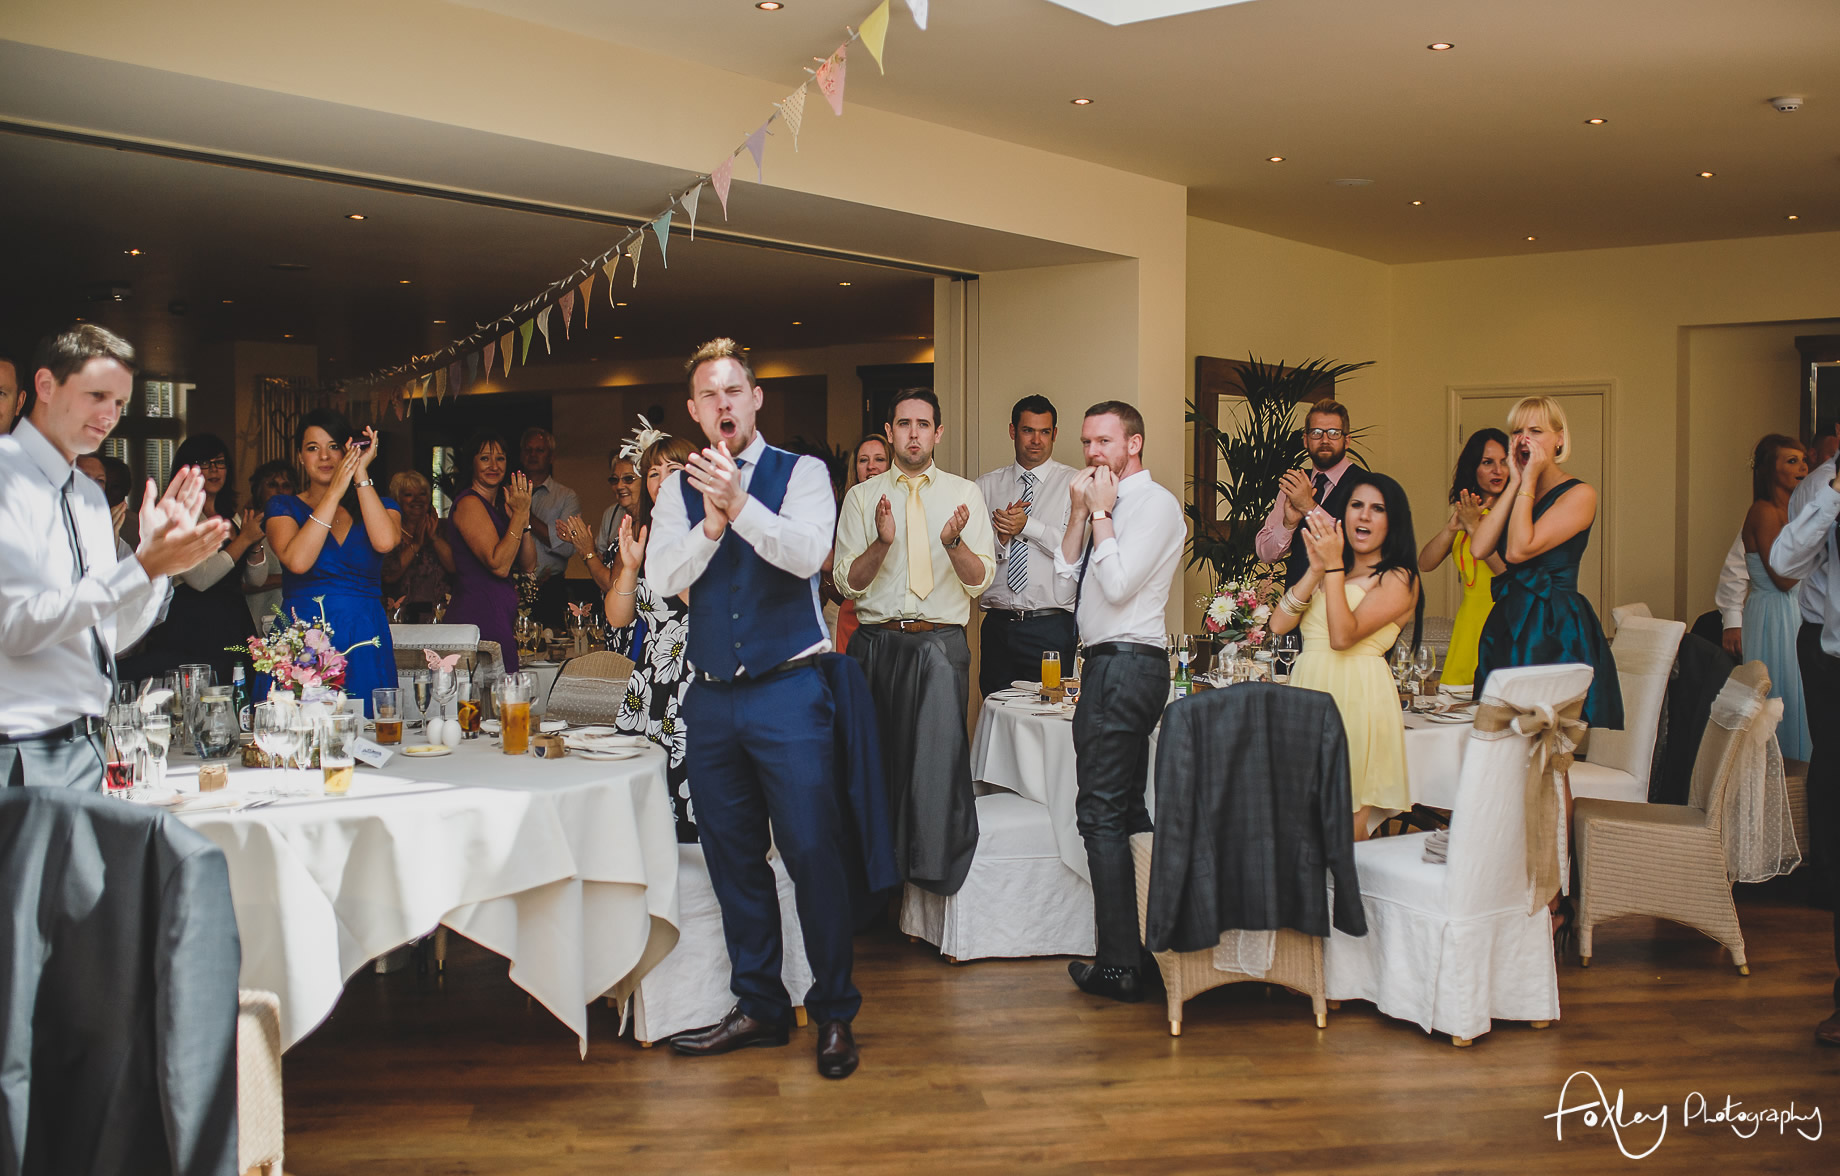 Claire and James' Wedding at Mitton Hall 117